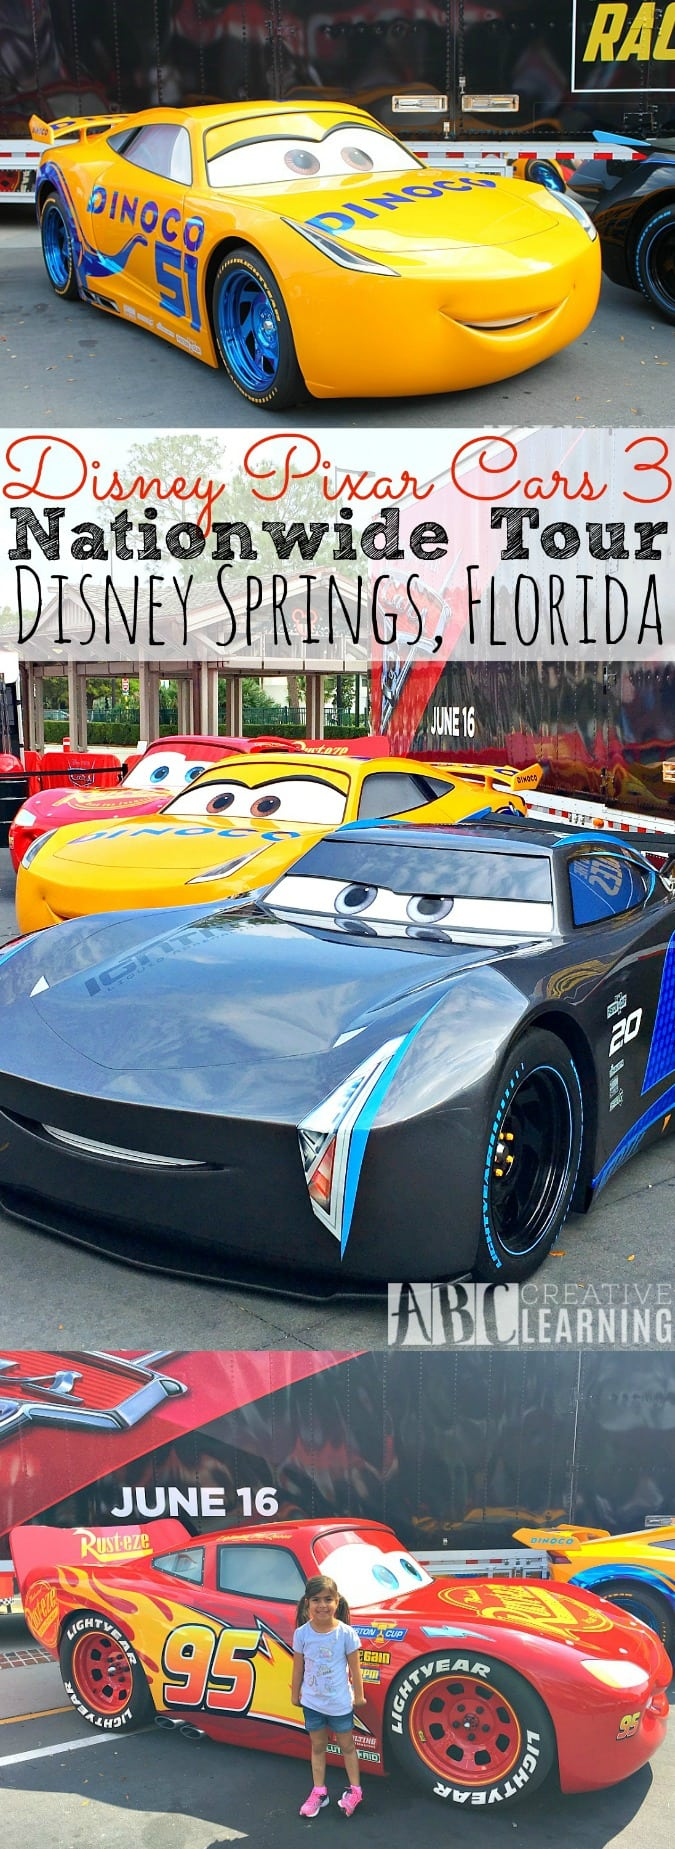 Disney Pixar Cars 3 NationWide Tour - Disney Springs - simplytodaylife.com